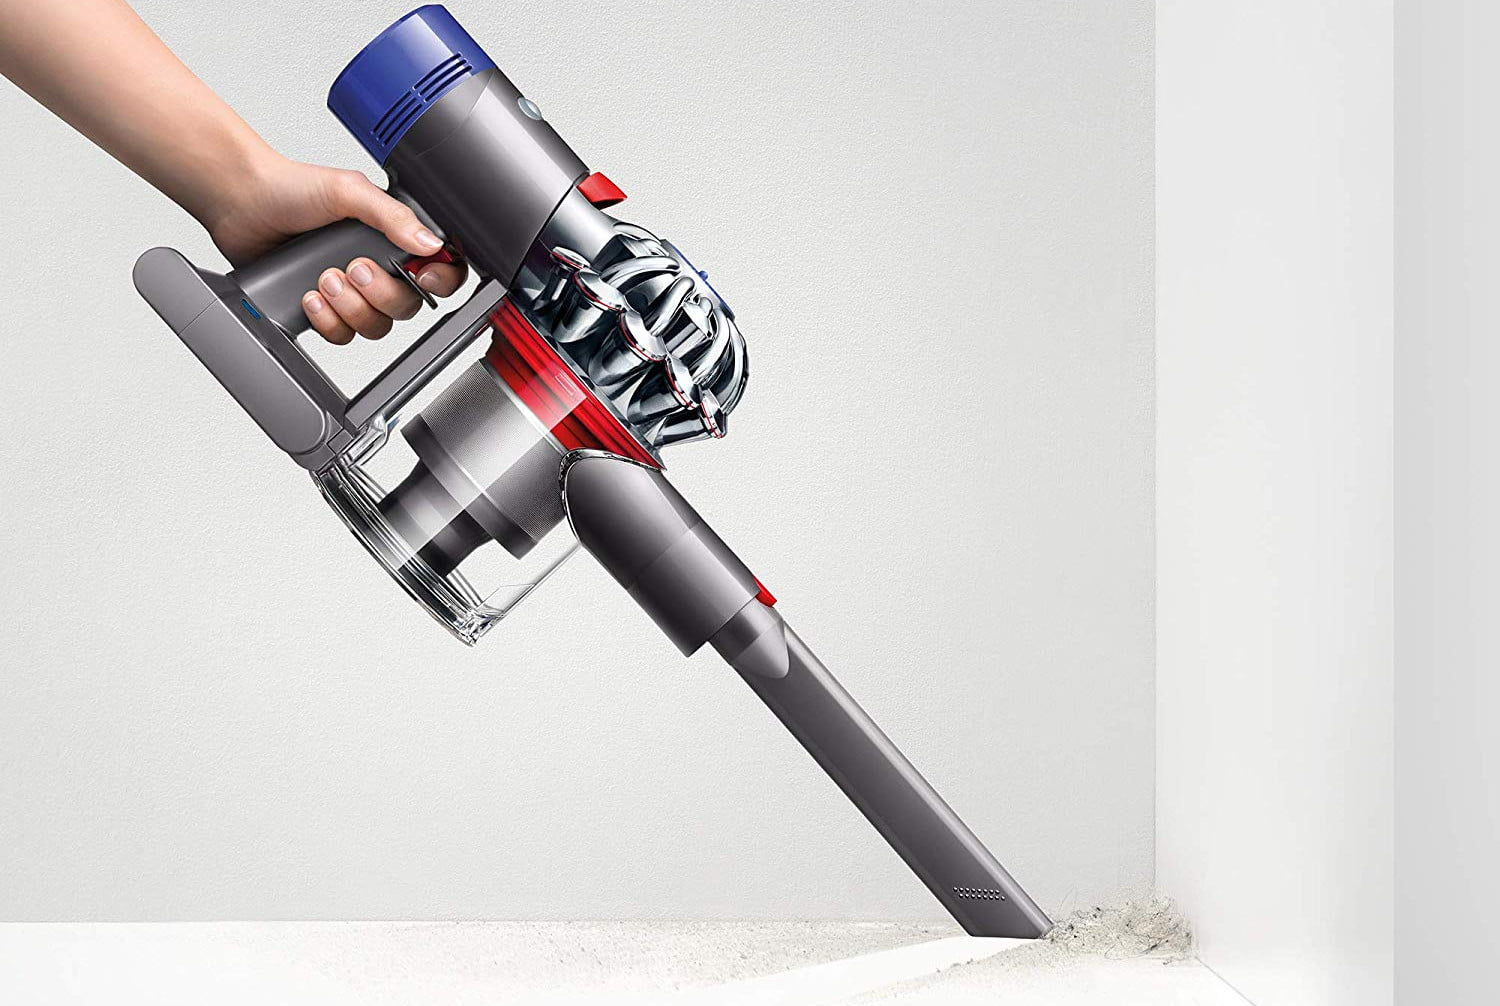 amazon price plummets on dyson v7 animal pro cordless vac with pet tools  5 1